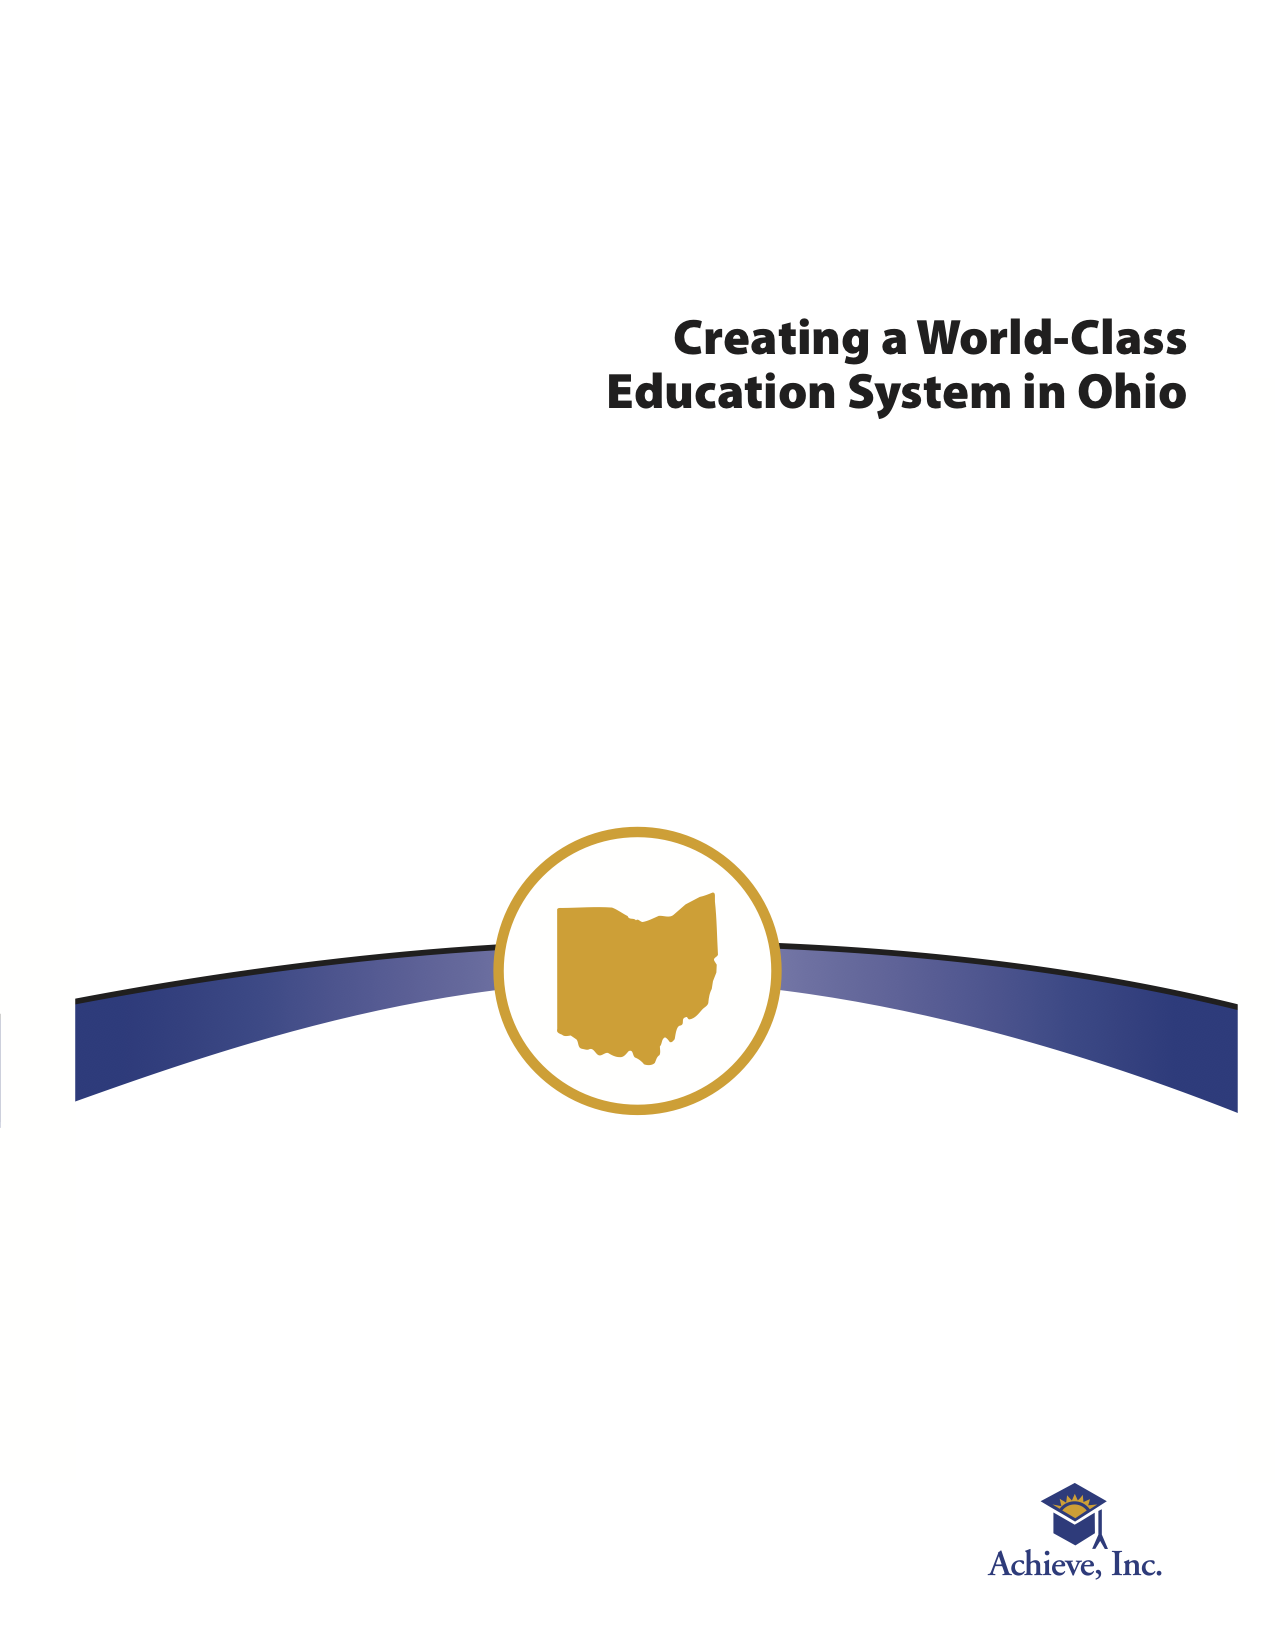 Creating a World-Class Education System in Ohio Cover